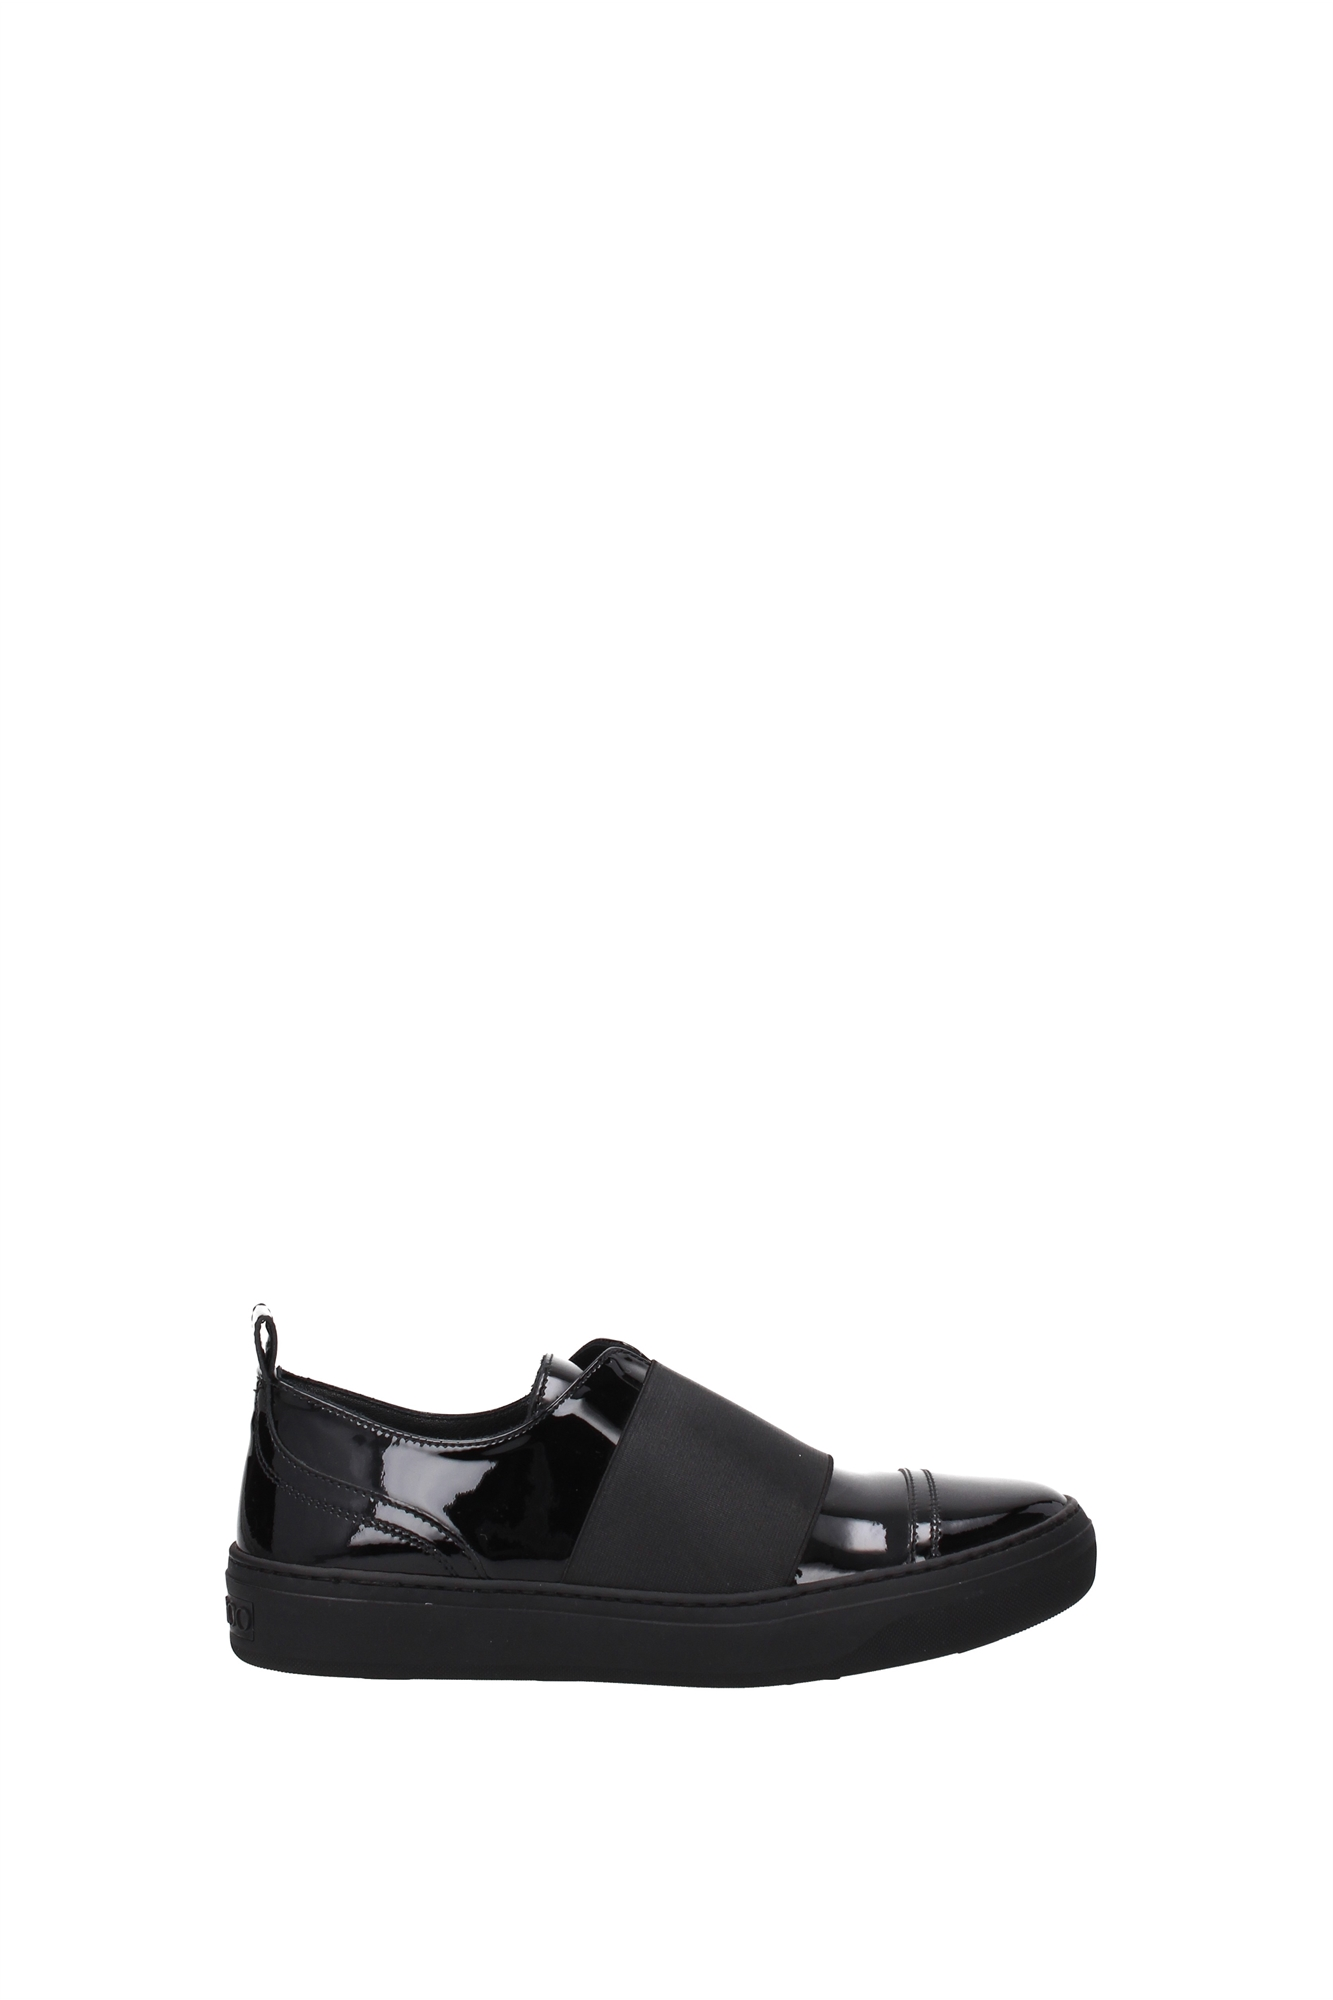 lace up shoes jimmy choo patent leather black